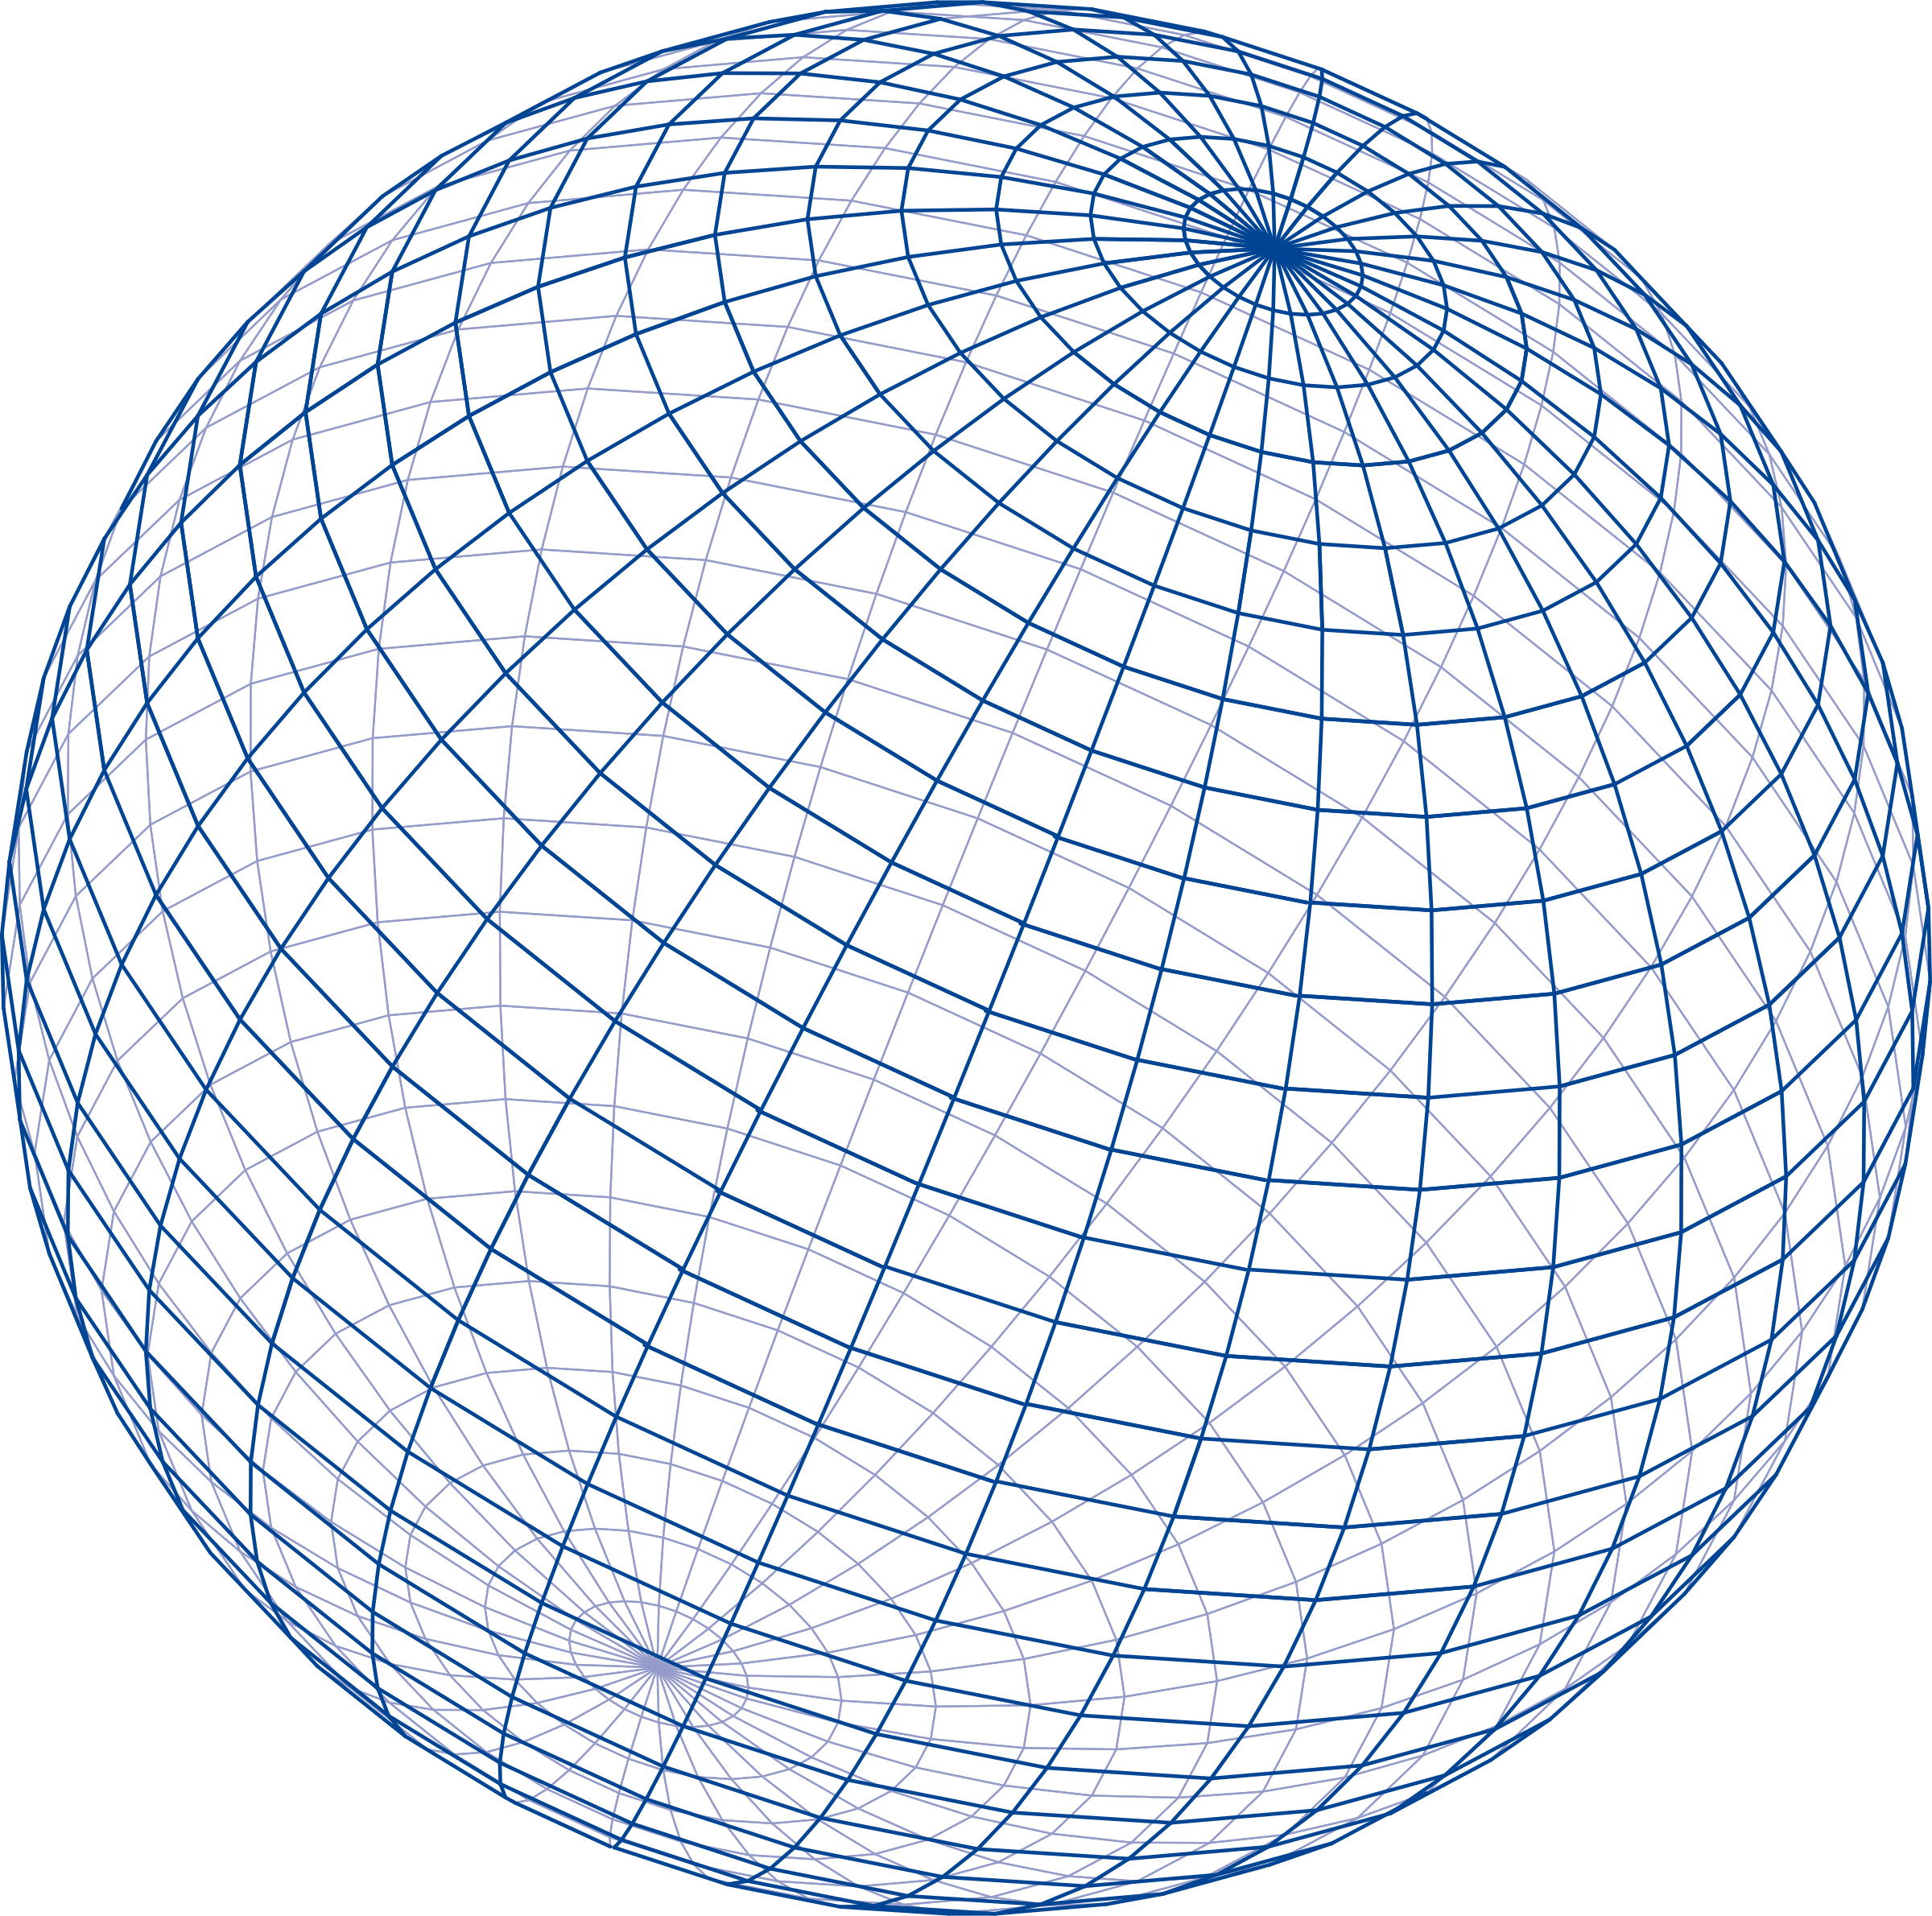 Blue grid sphere by enolynn